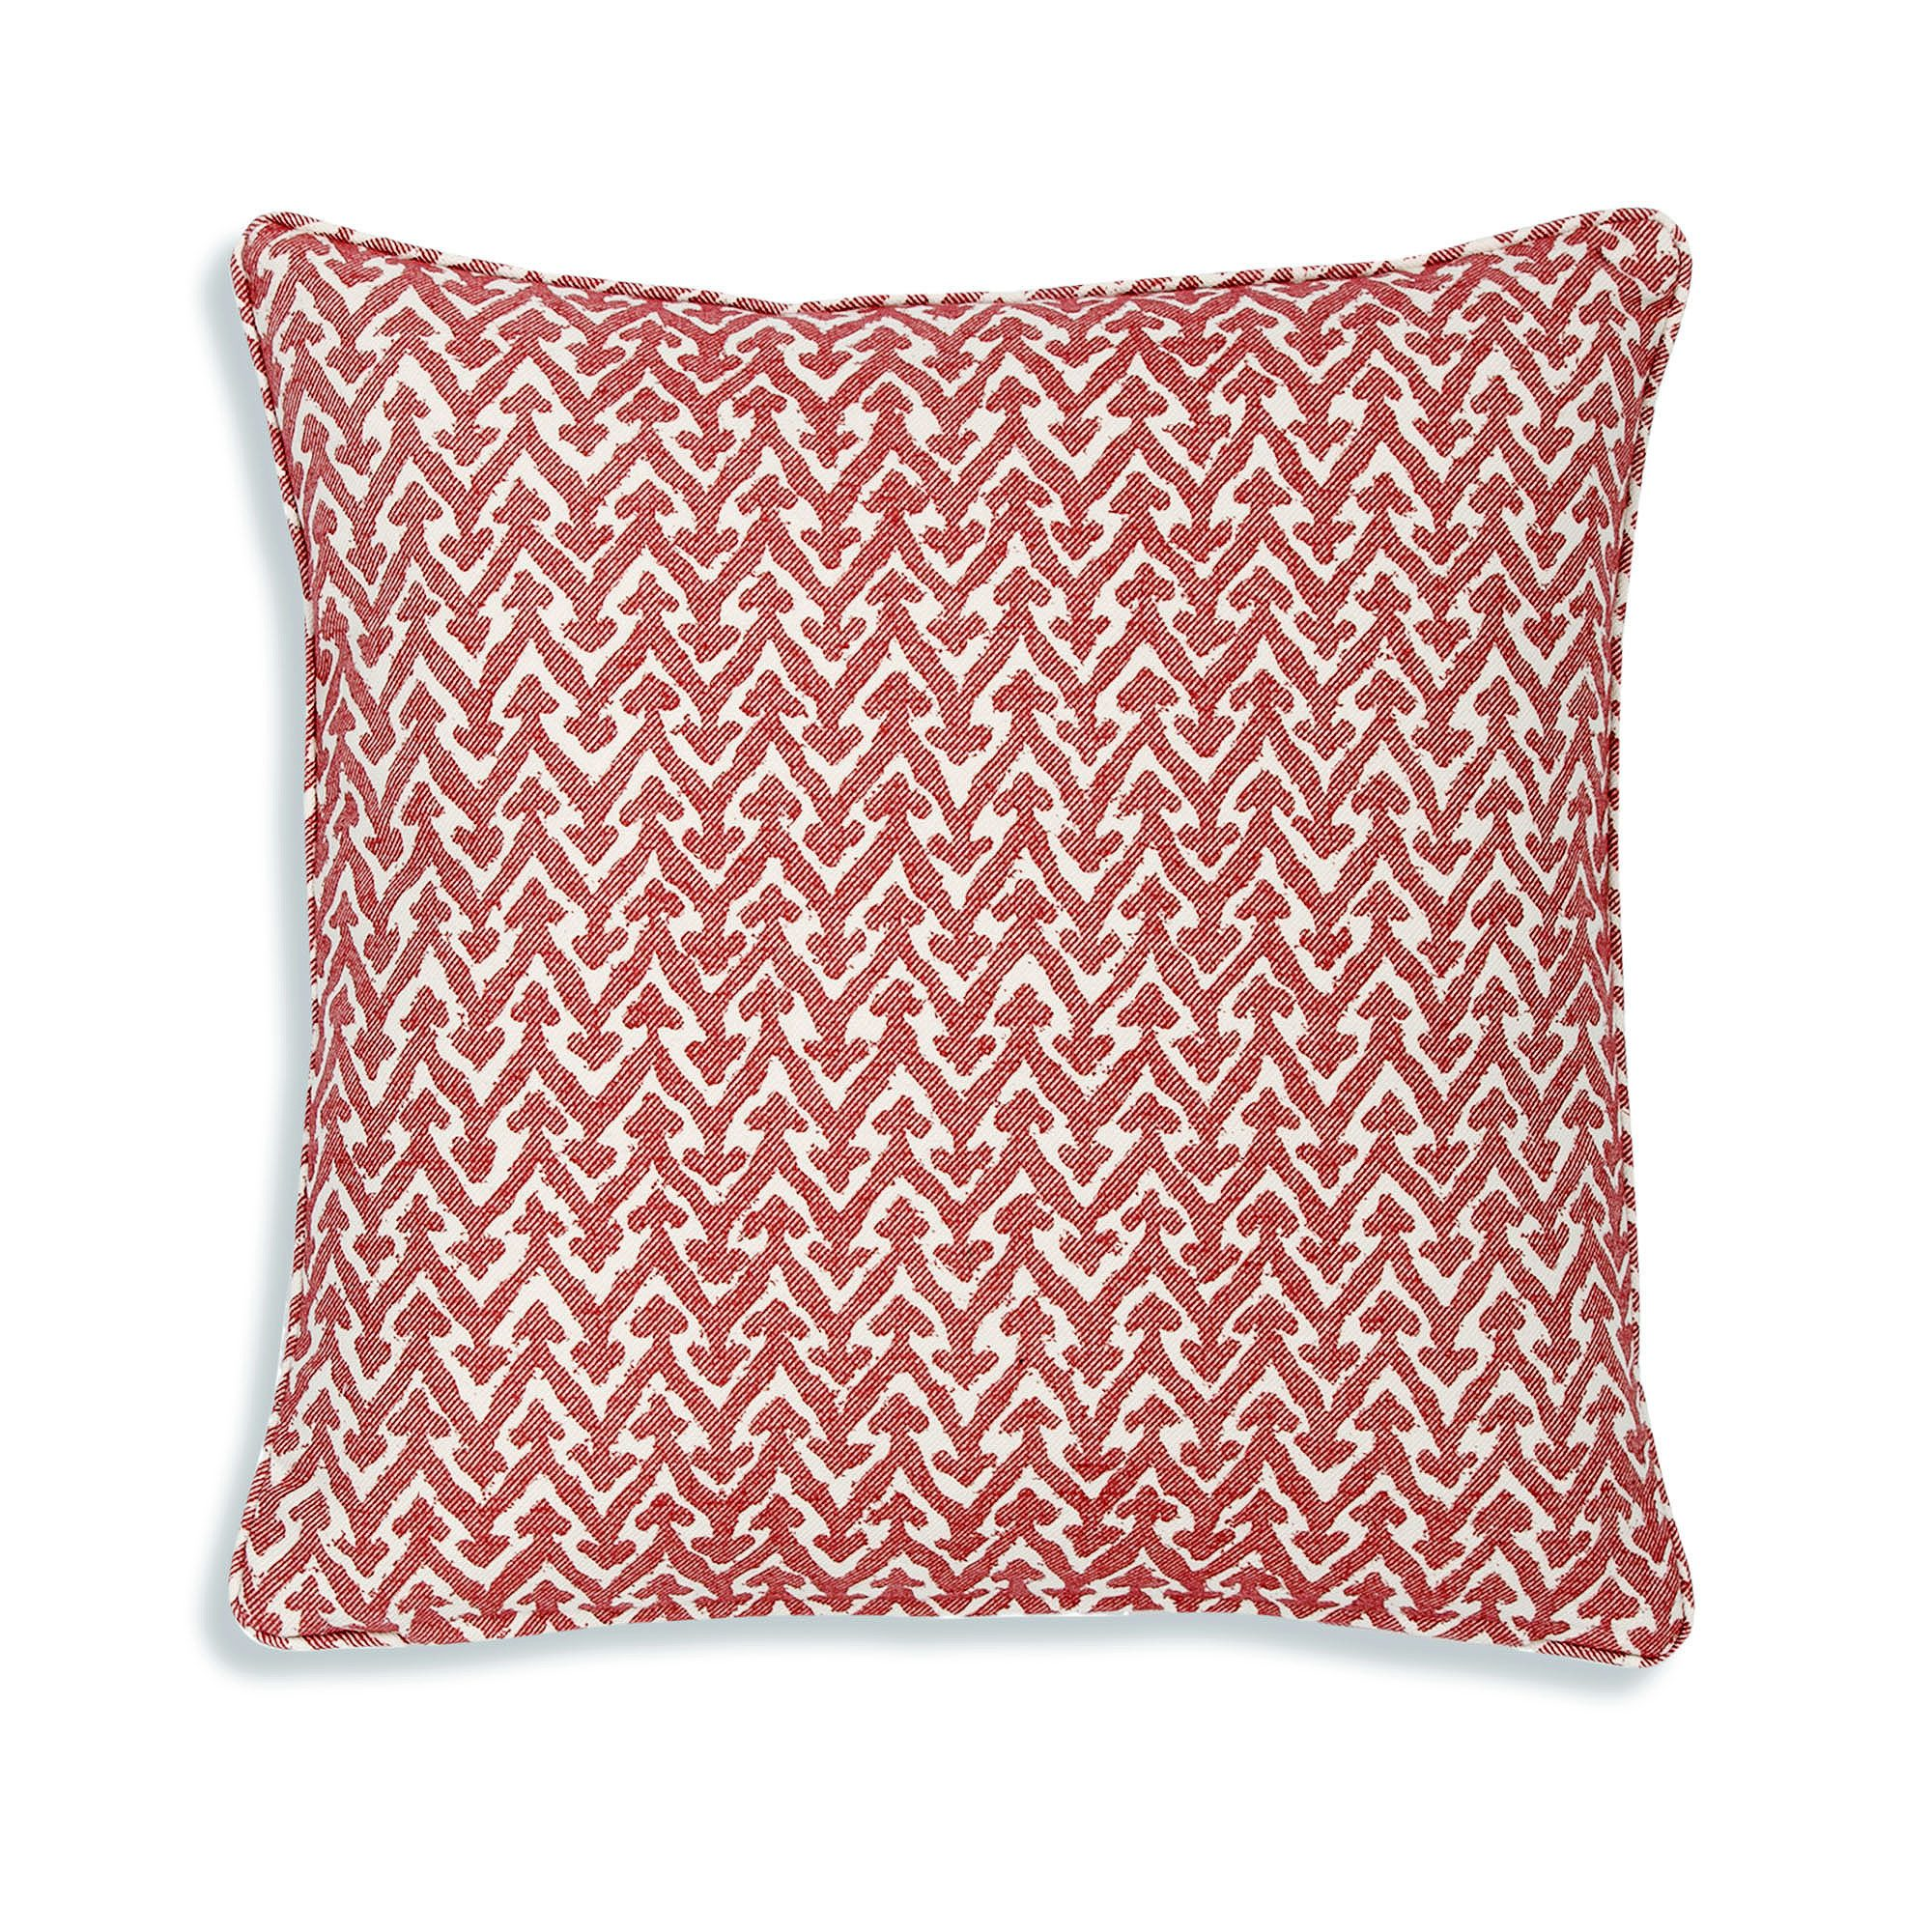 Large Square Cushion in Red Rabanna